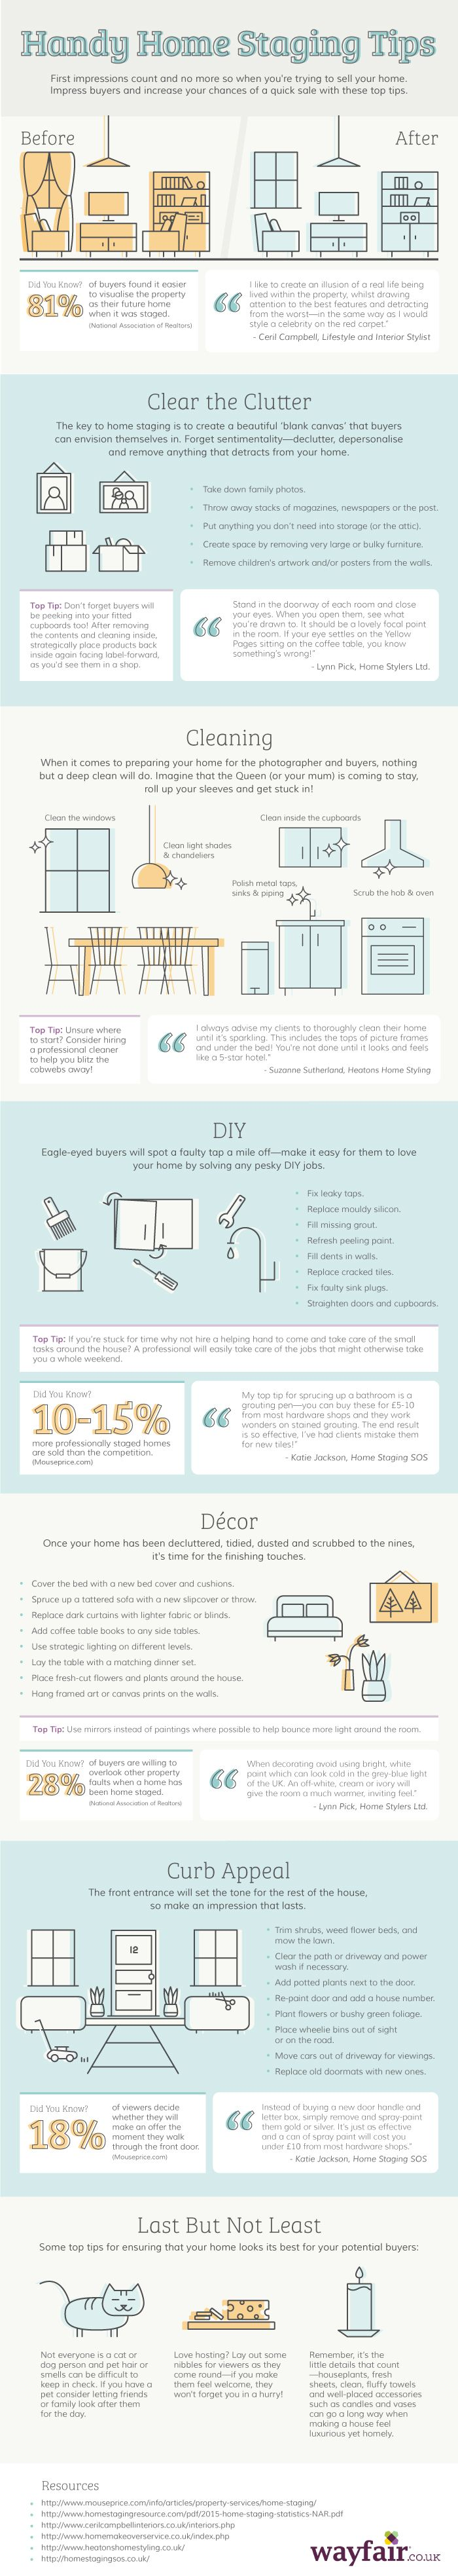 Handy Home Staging Tips #infographic #HomeImprovement